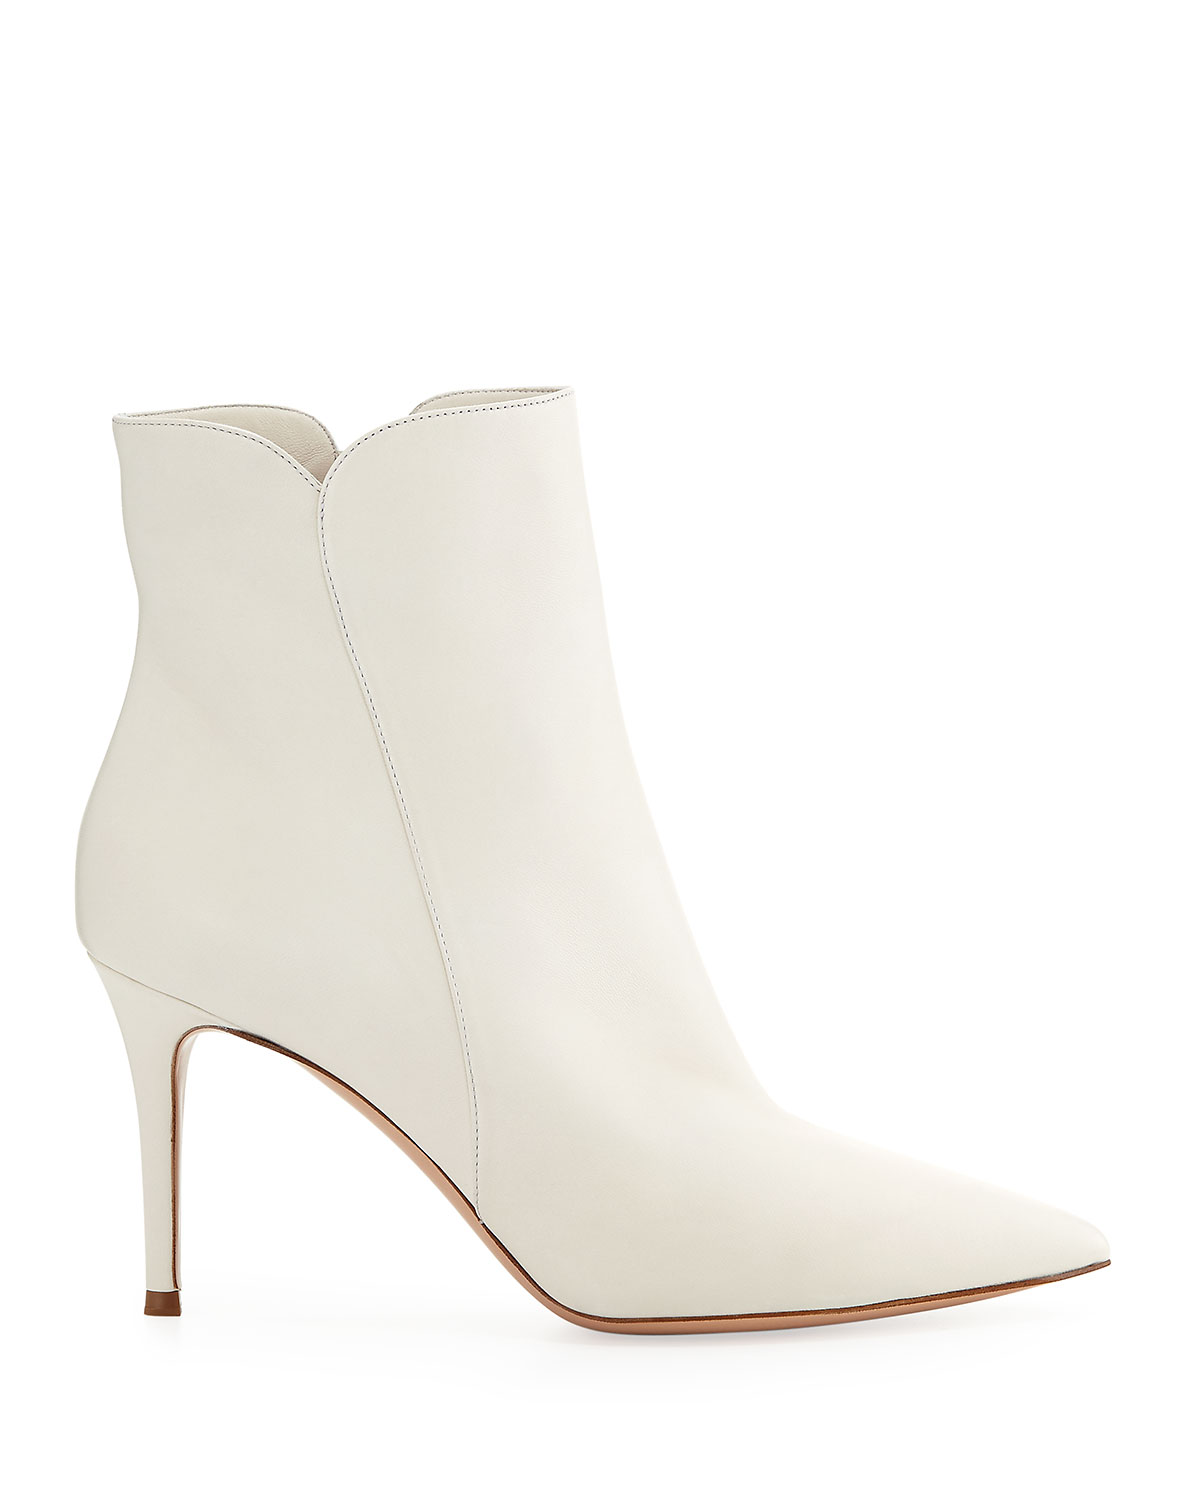 Gianvito Rossi 85MM LEVY LEATHER ANKLE BOOTS 1KqEqYgAz